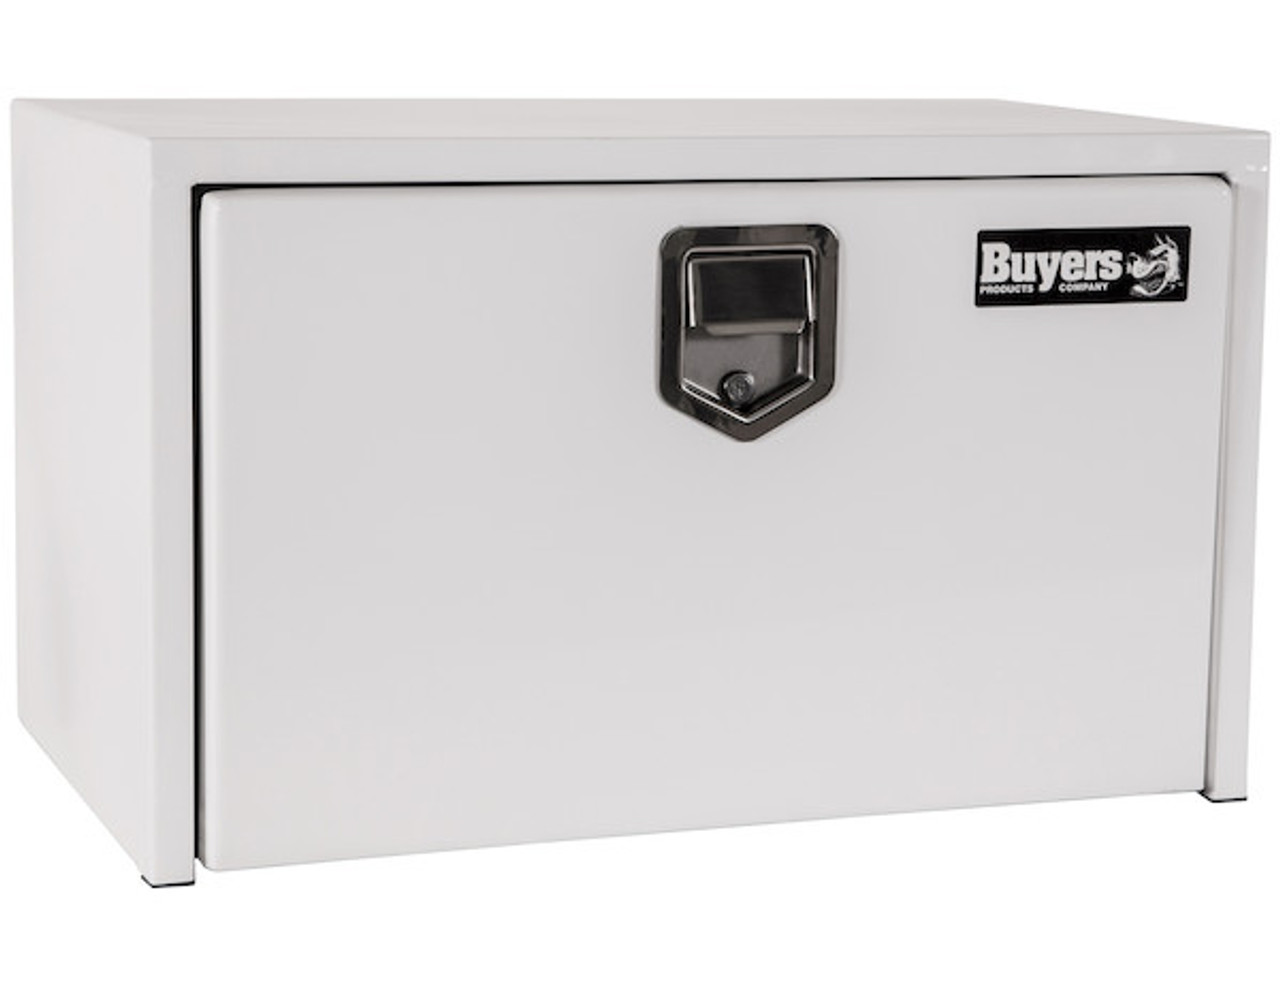 "1703203 BUYERS PRODUCTS WHITE STEEL UNDERBODY TRUCK BOX WITH PADDLE LATCH TOOLBOX 14""Hx16""Dx30""W"